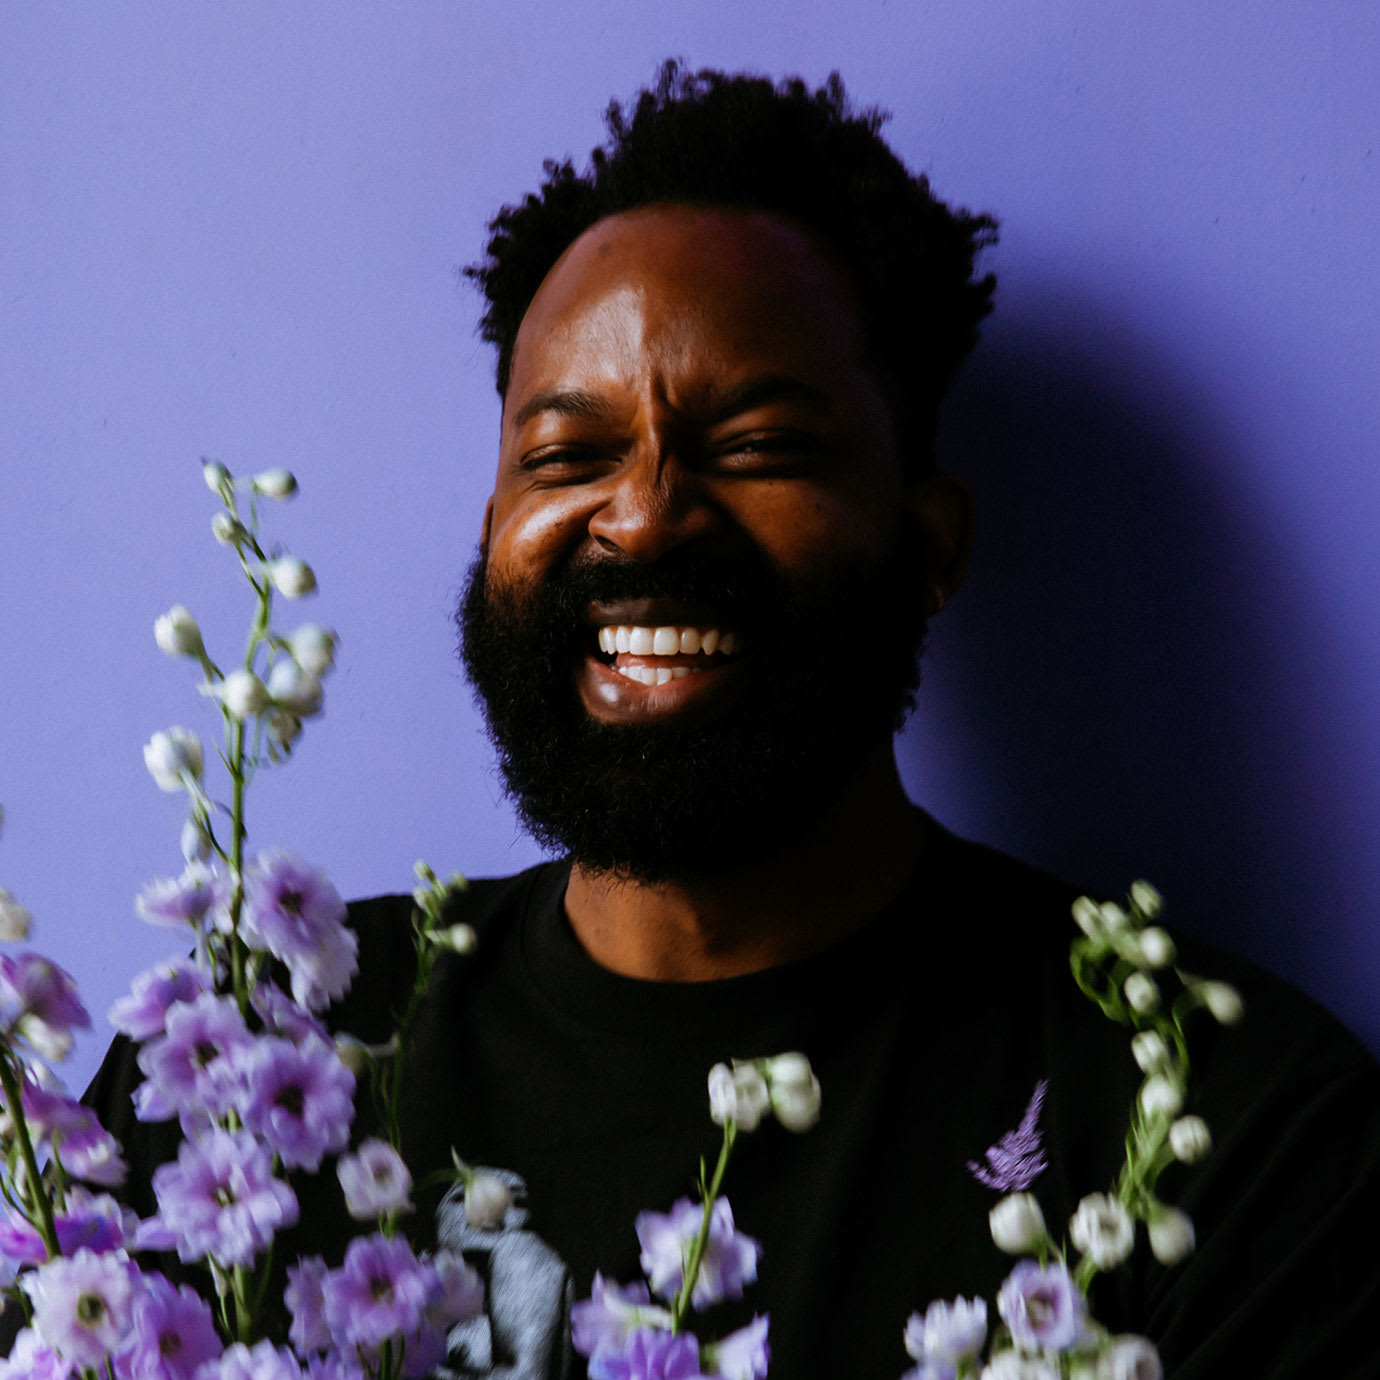 A man smiling in front of a purple background while holding flowers.